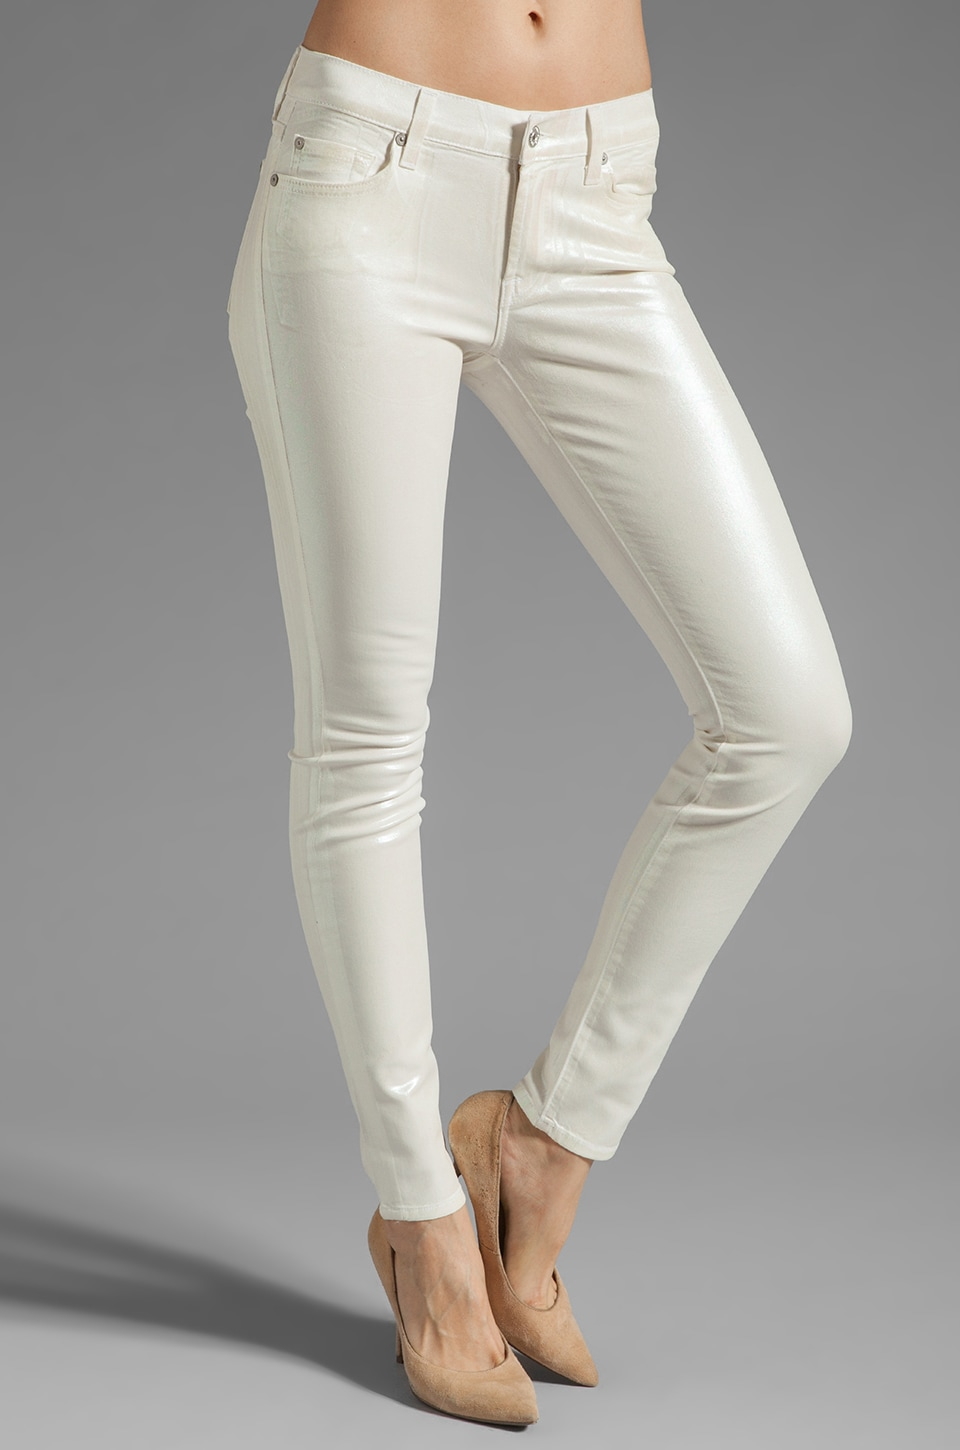 7 For All Mankind The Skinny in White Opalescent